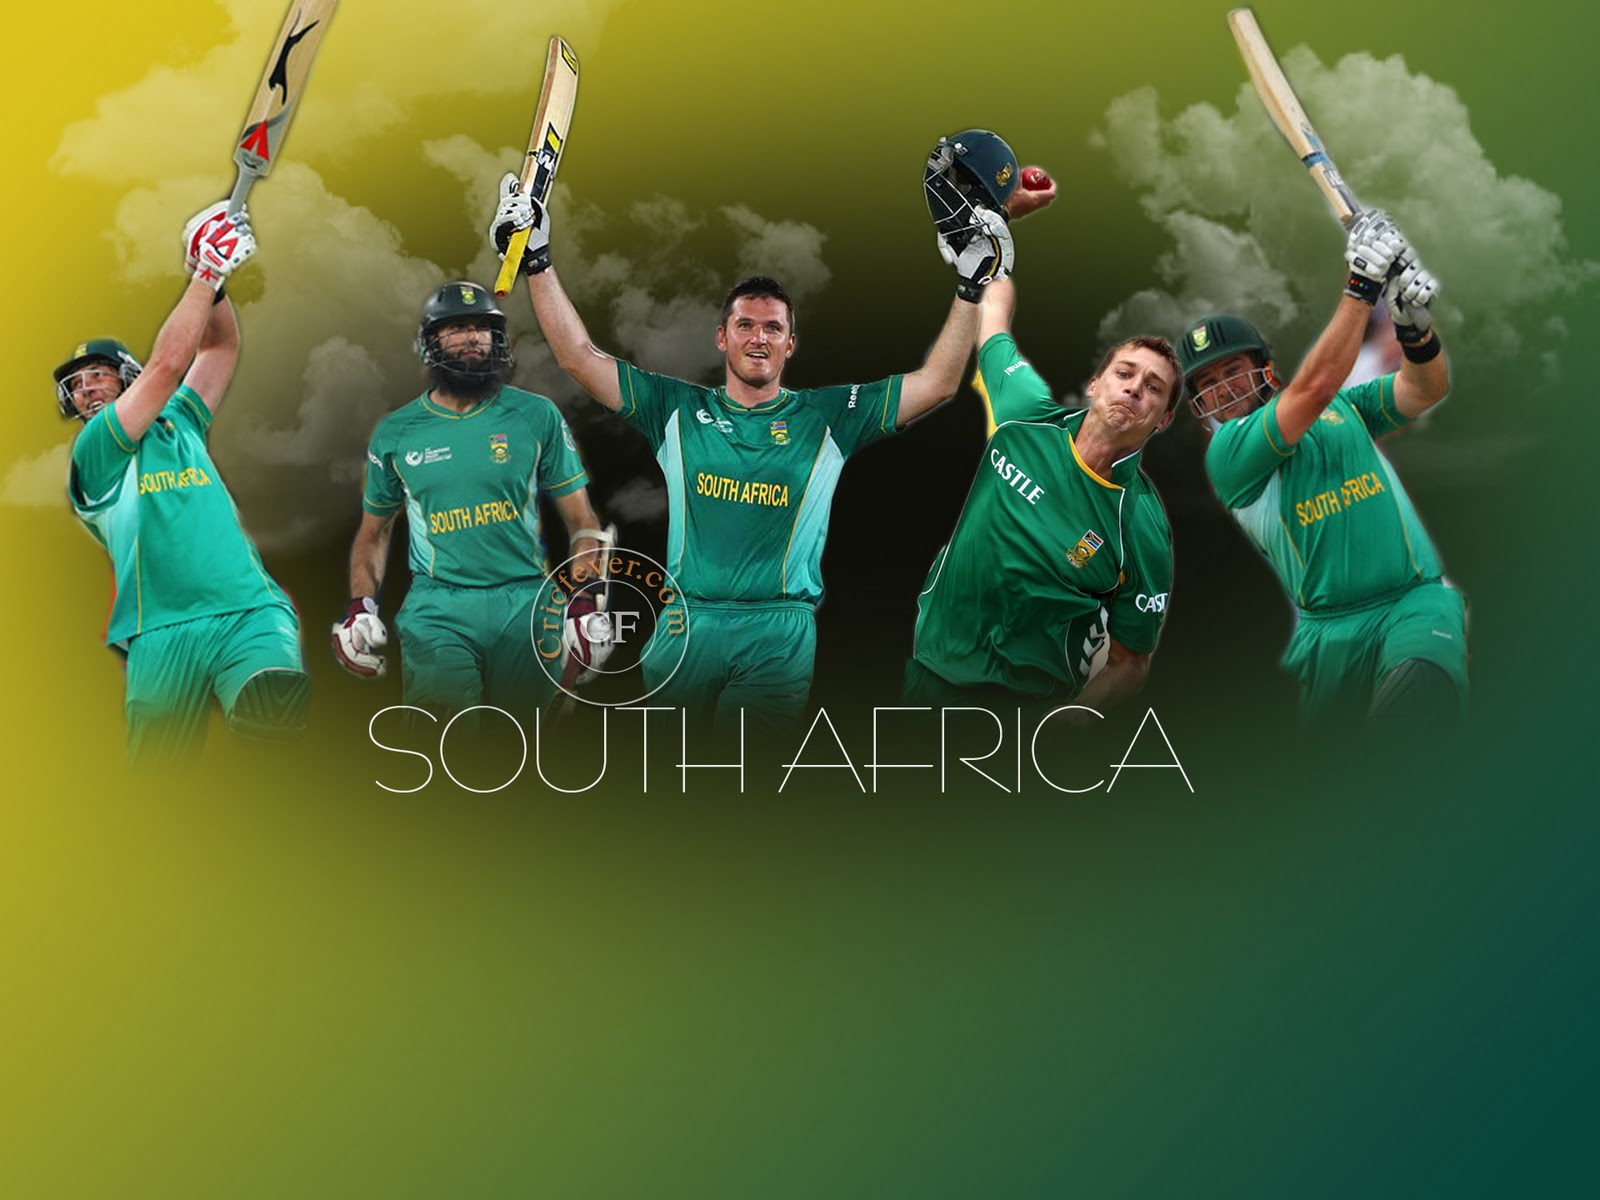 South Africa Team Wallpapers - Sports Competition *November 2012*